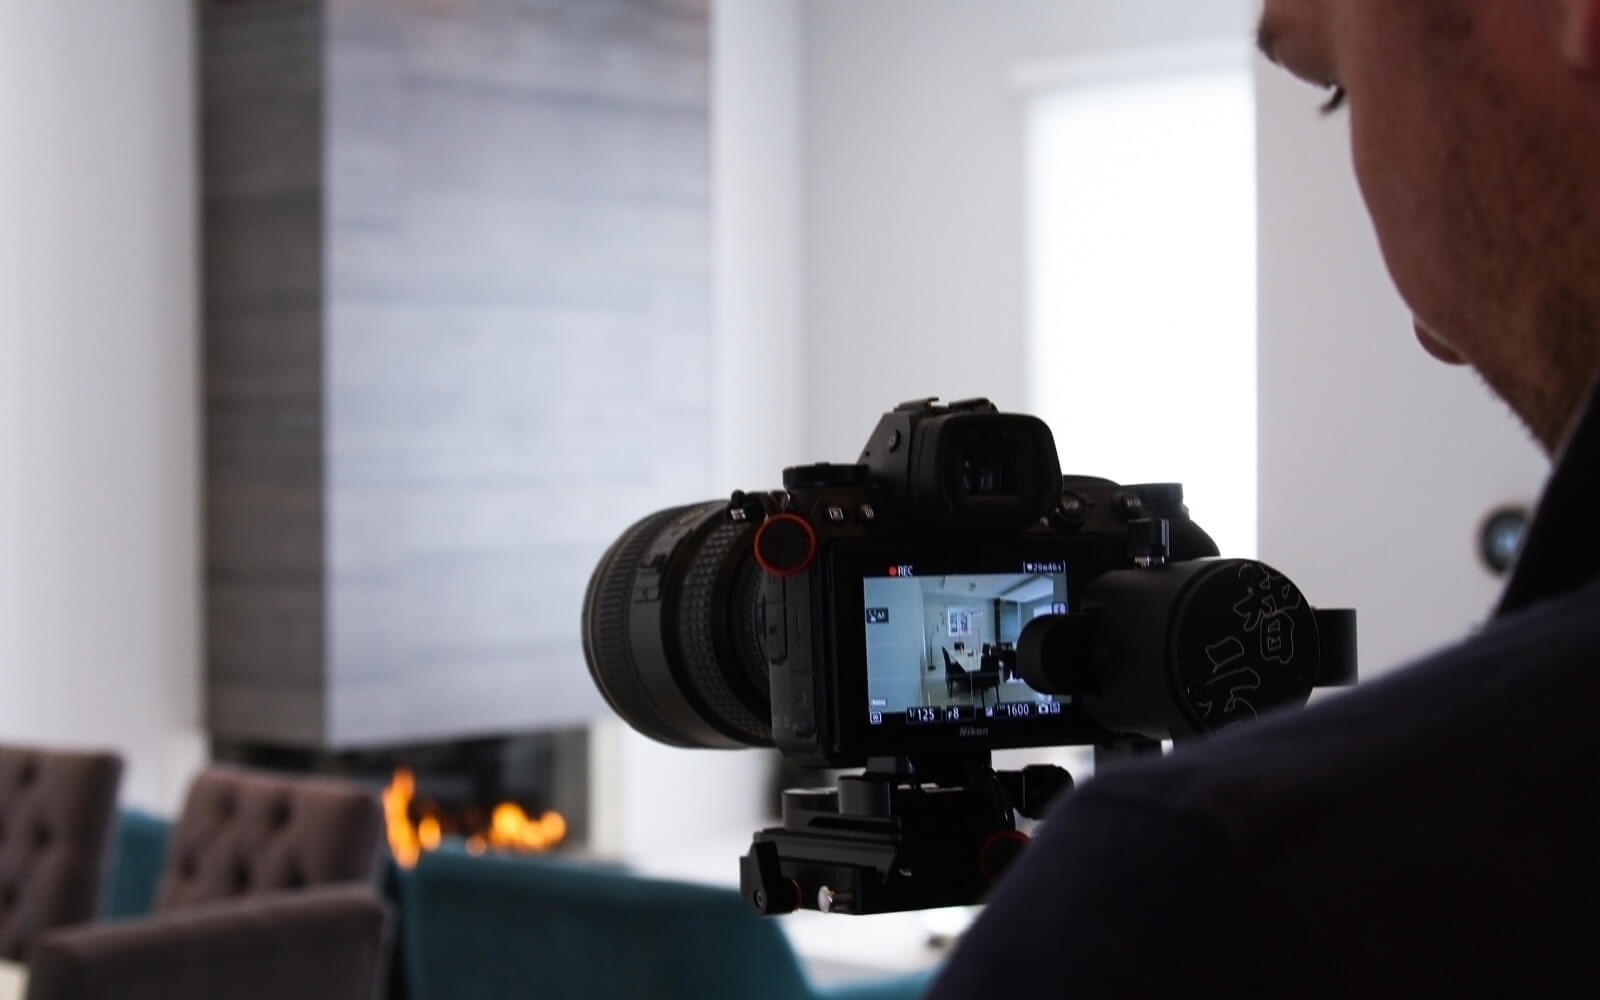 Real Estate Video in action